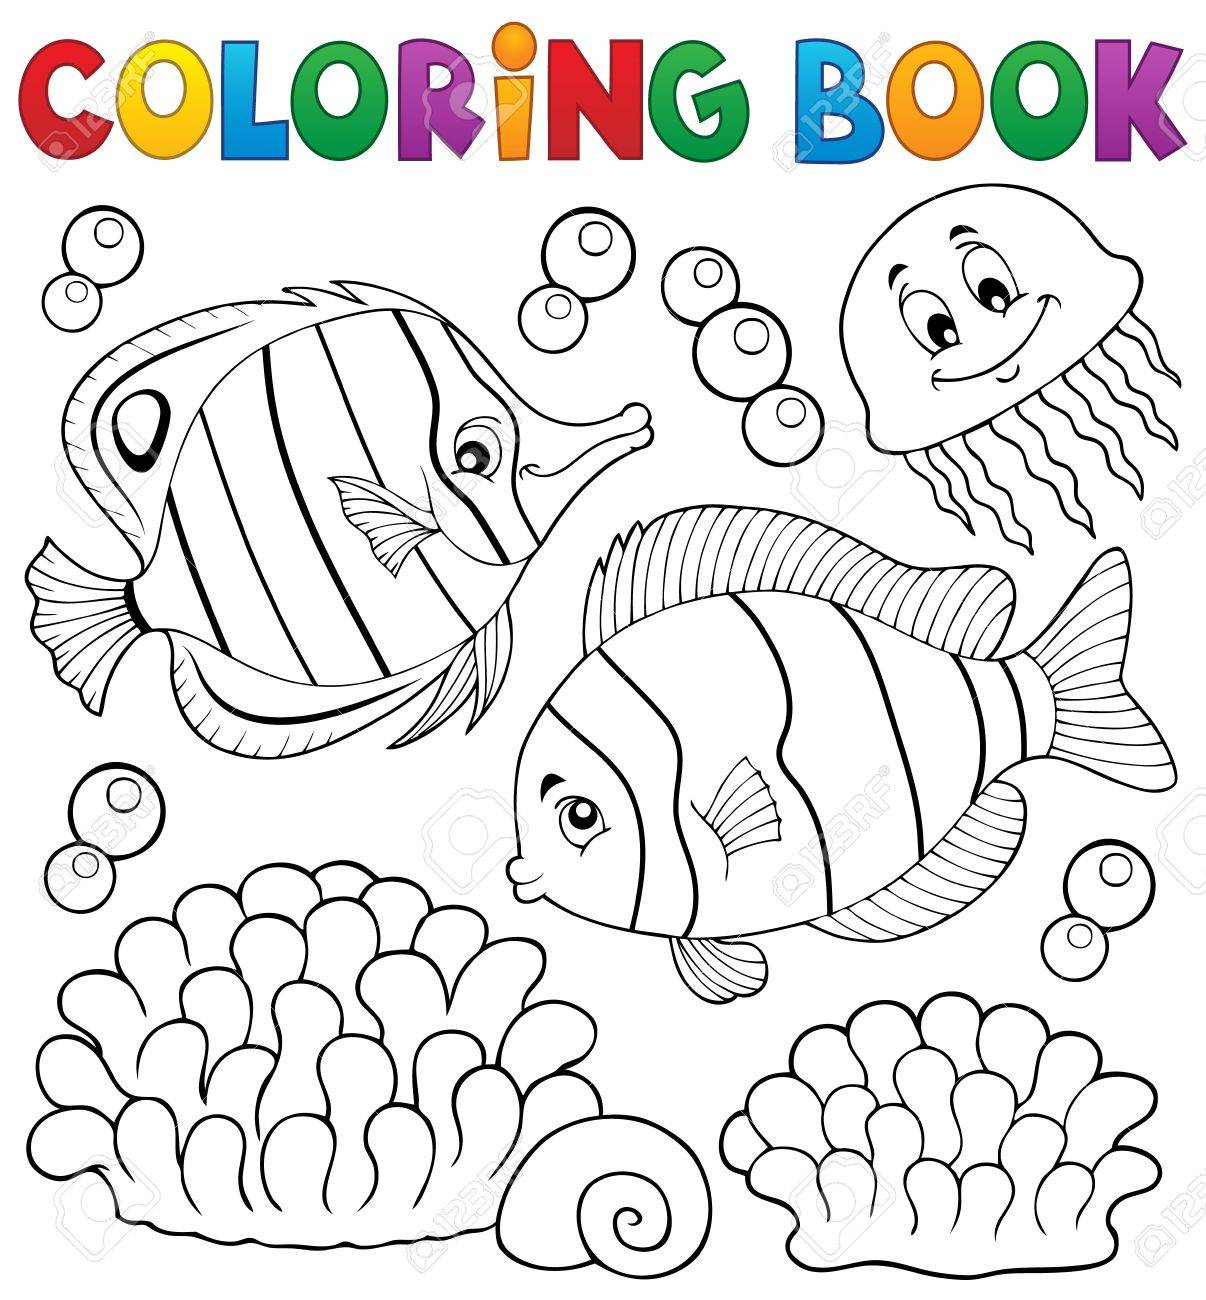 Coloring Book Coral Fish Theme 2 - Vector Illustration. Royalty Free ...